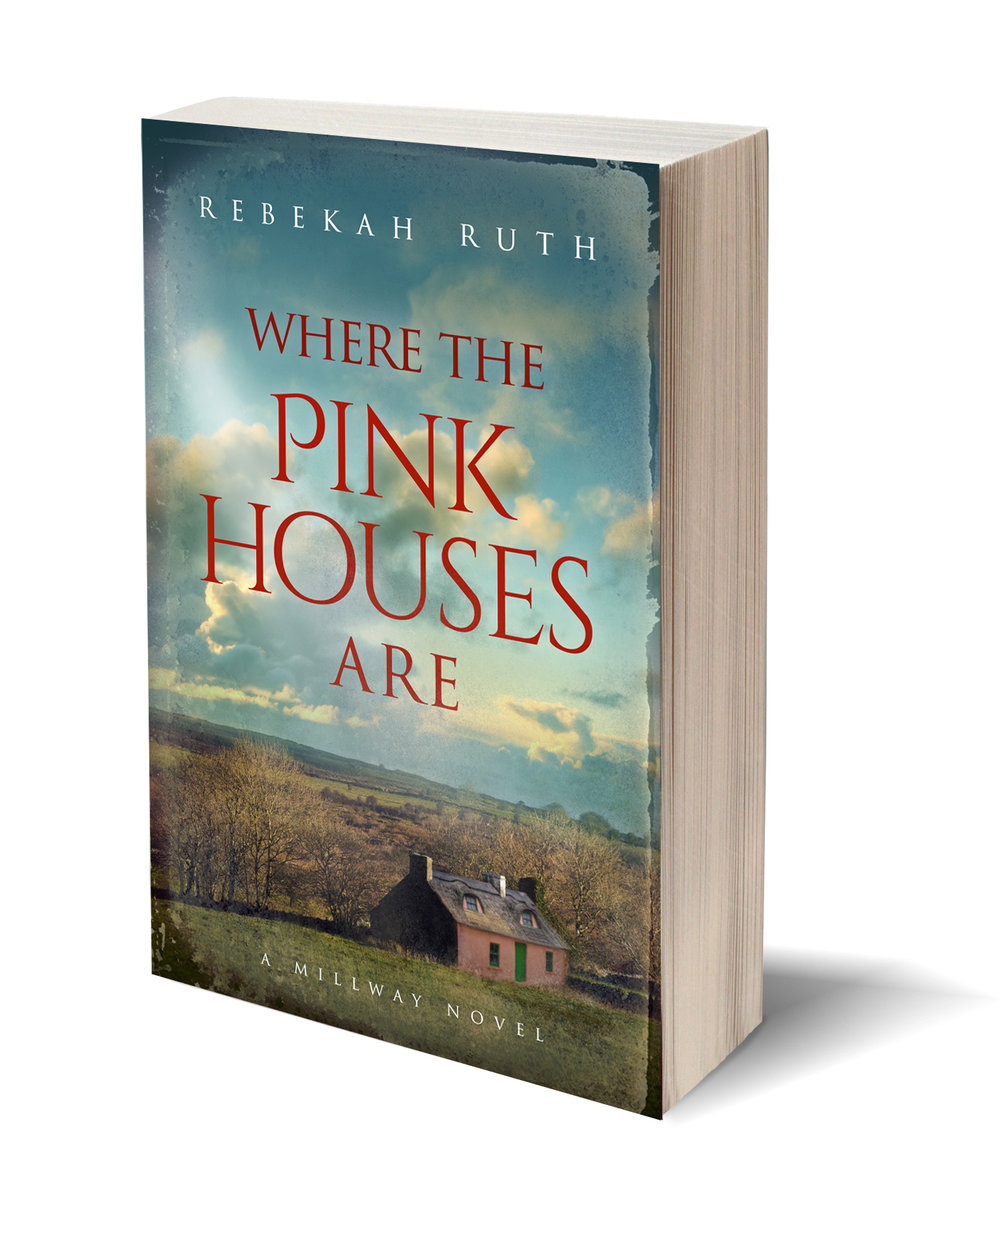 Pink Houses 3D cover.jpg